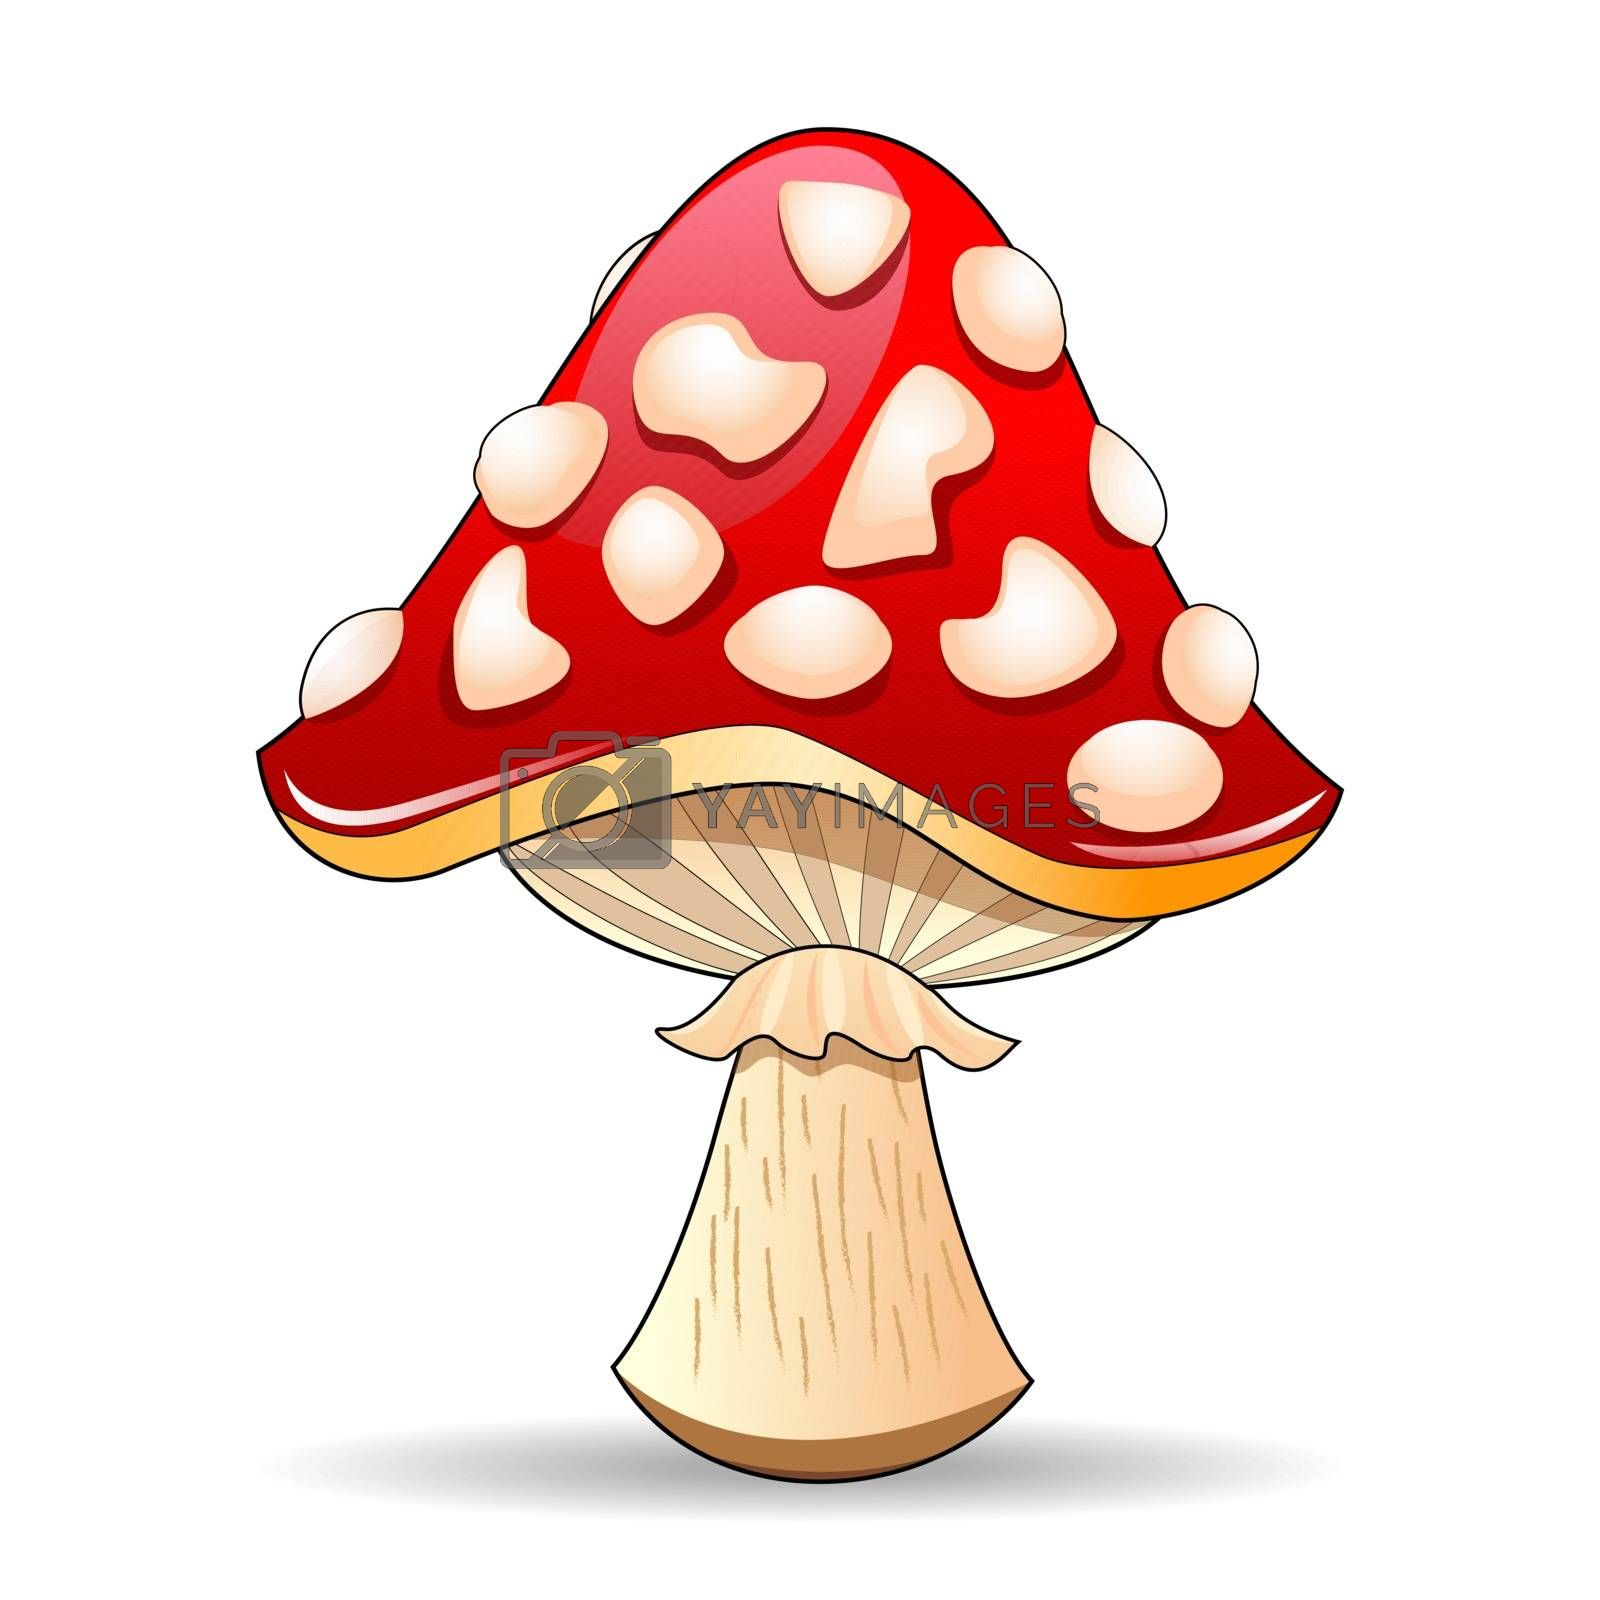 Mushroom amanita. Spotted red mushroom on a white background. Mushroom hat red with white spots.